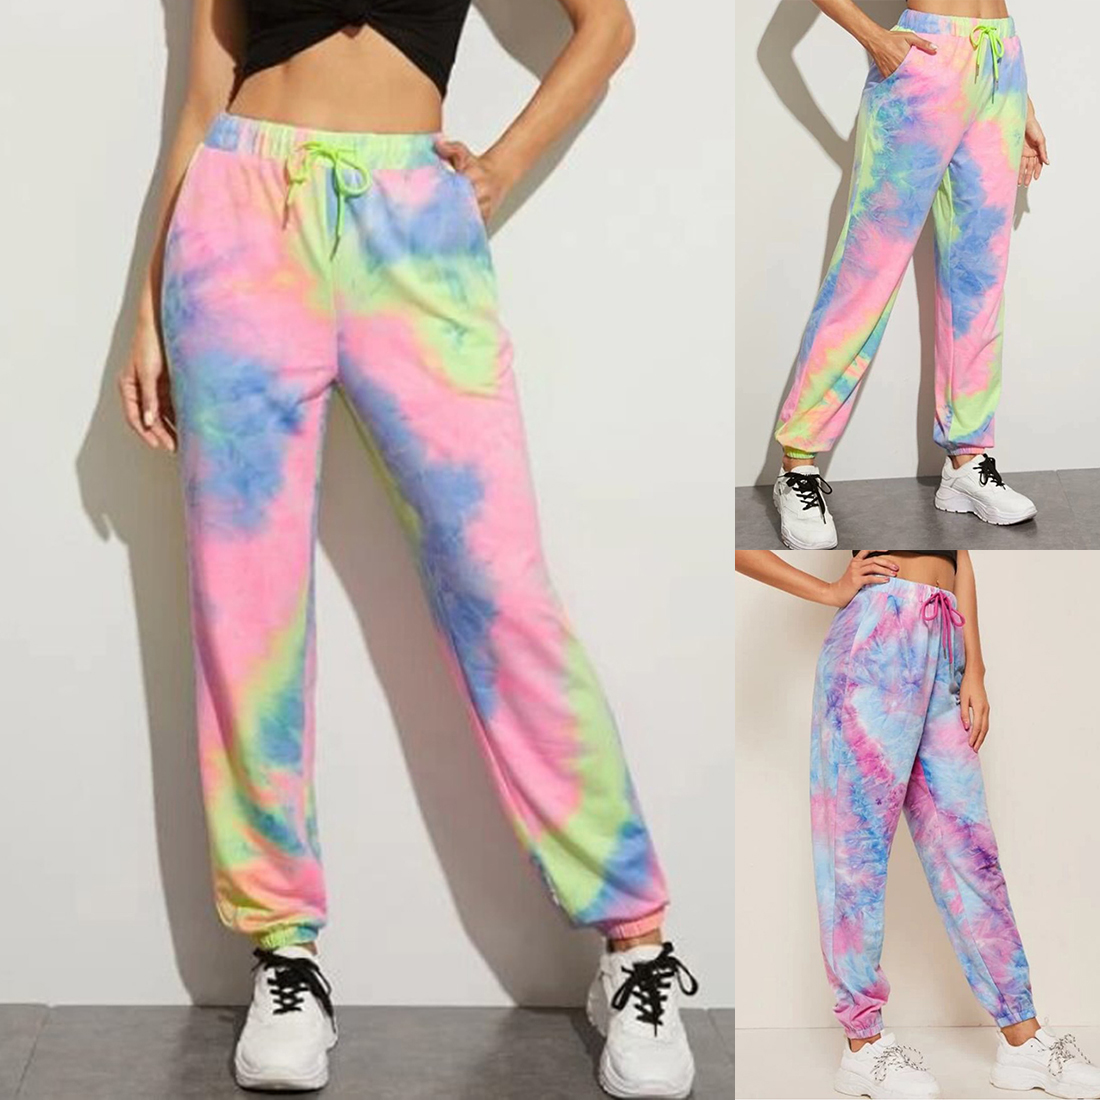 Oeak Tie Dye Printed Sweatpants Women Casual Loose Long Trousers Elastic High Waist Pants Capris Joggers Streetwear